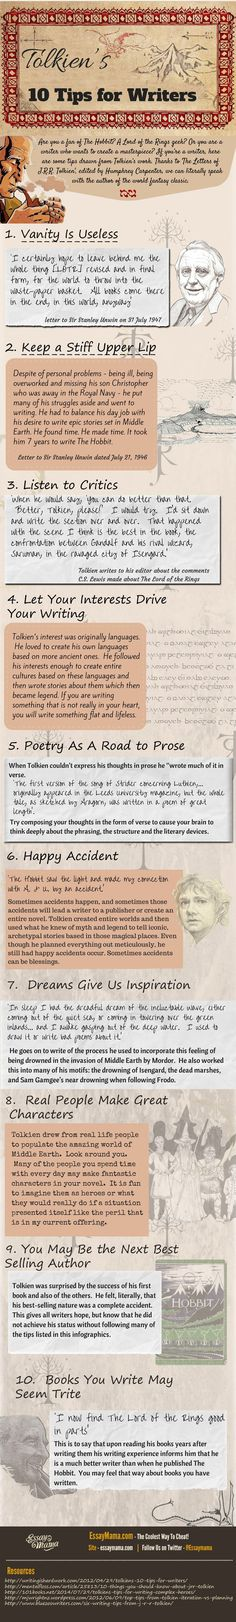 JRR Tolkien tips for writers  http://www.mediabistro.com/galleycat/j-r-r-tolkiens-10-tips-for-writers-infographic_b88880?utm_source=dlvr.it&utm_medium=twitter  https://www.facebook.com/PoorManPublishing